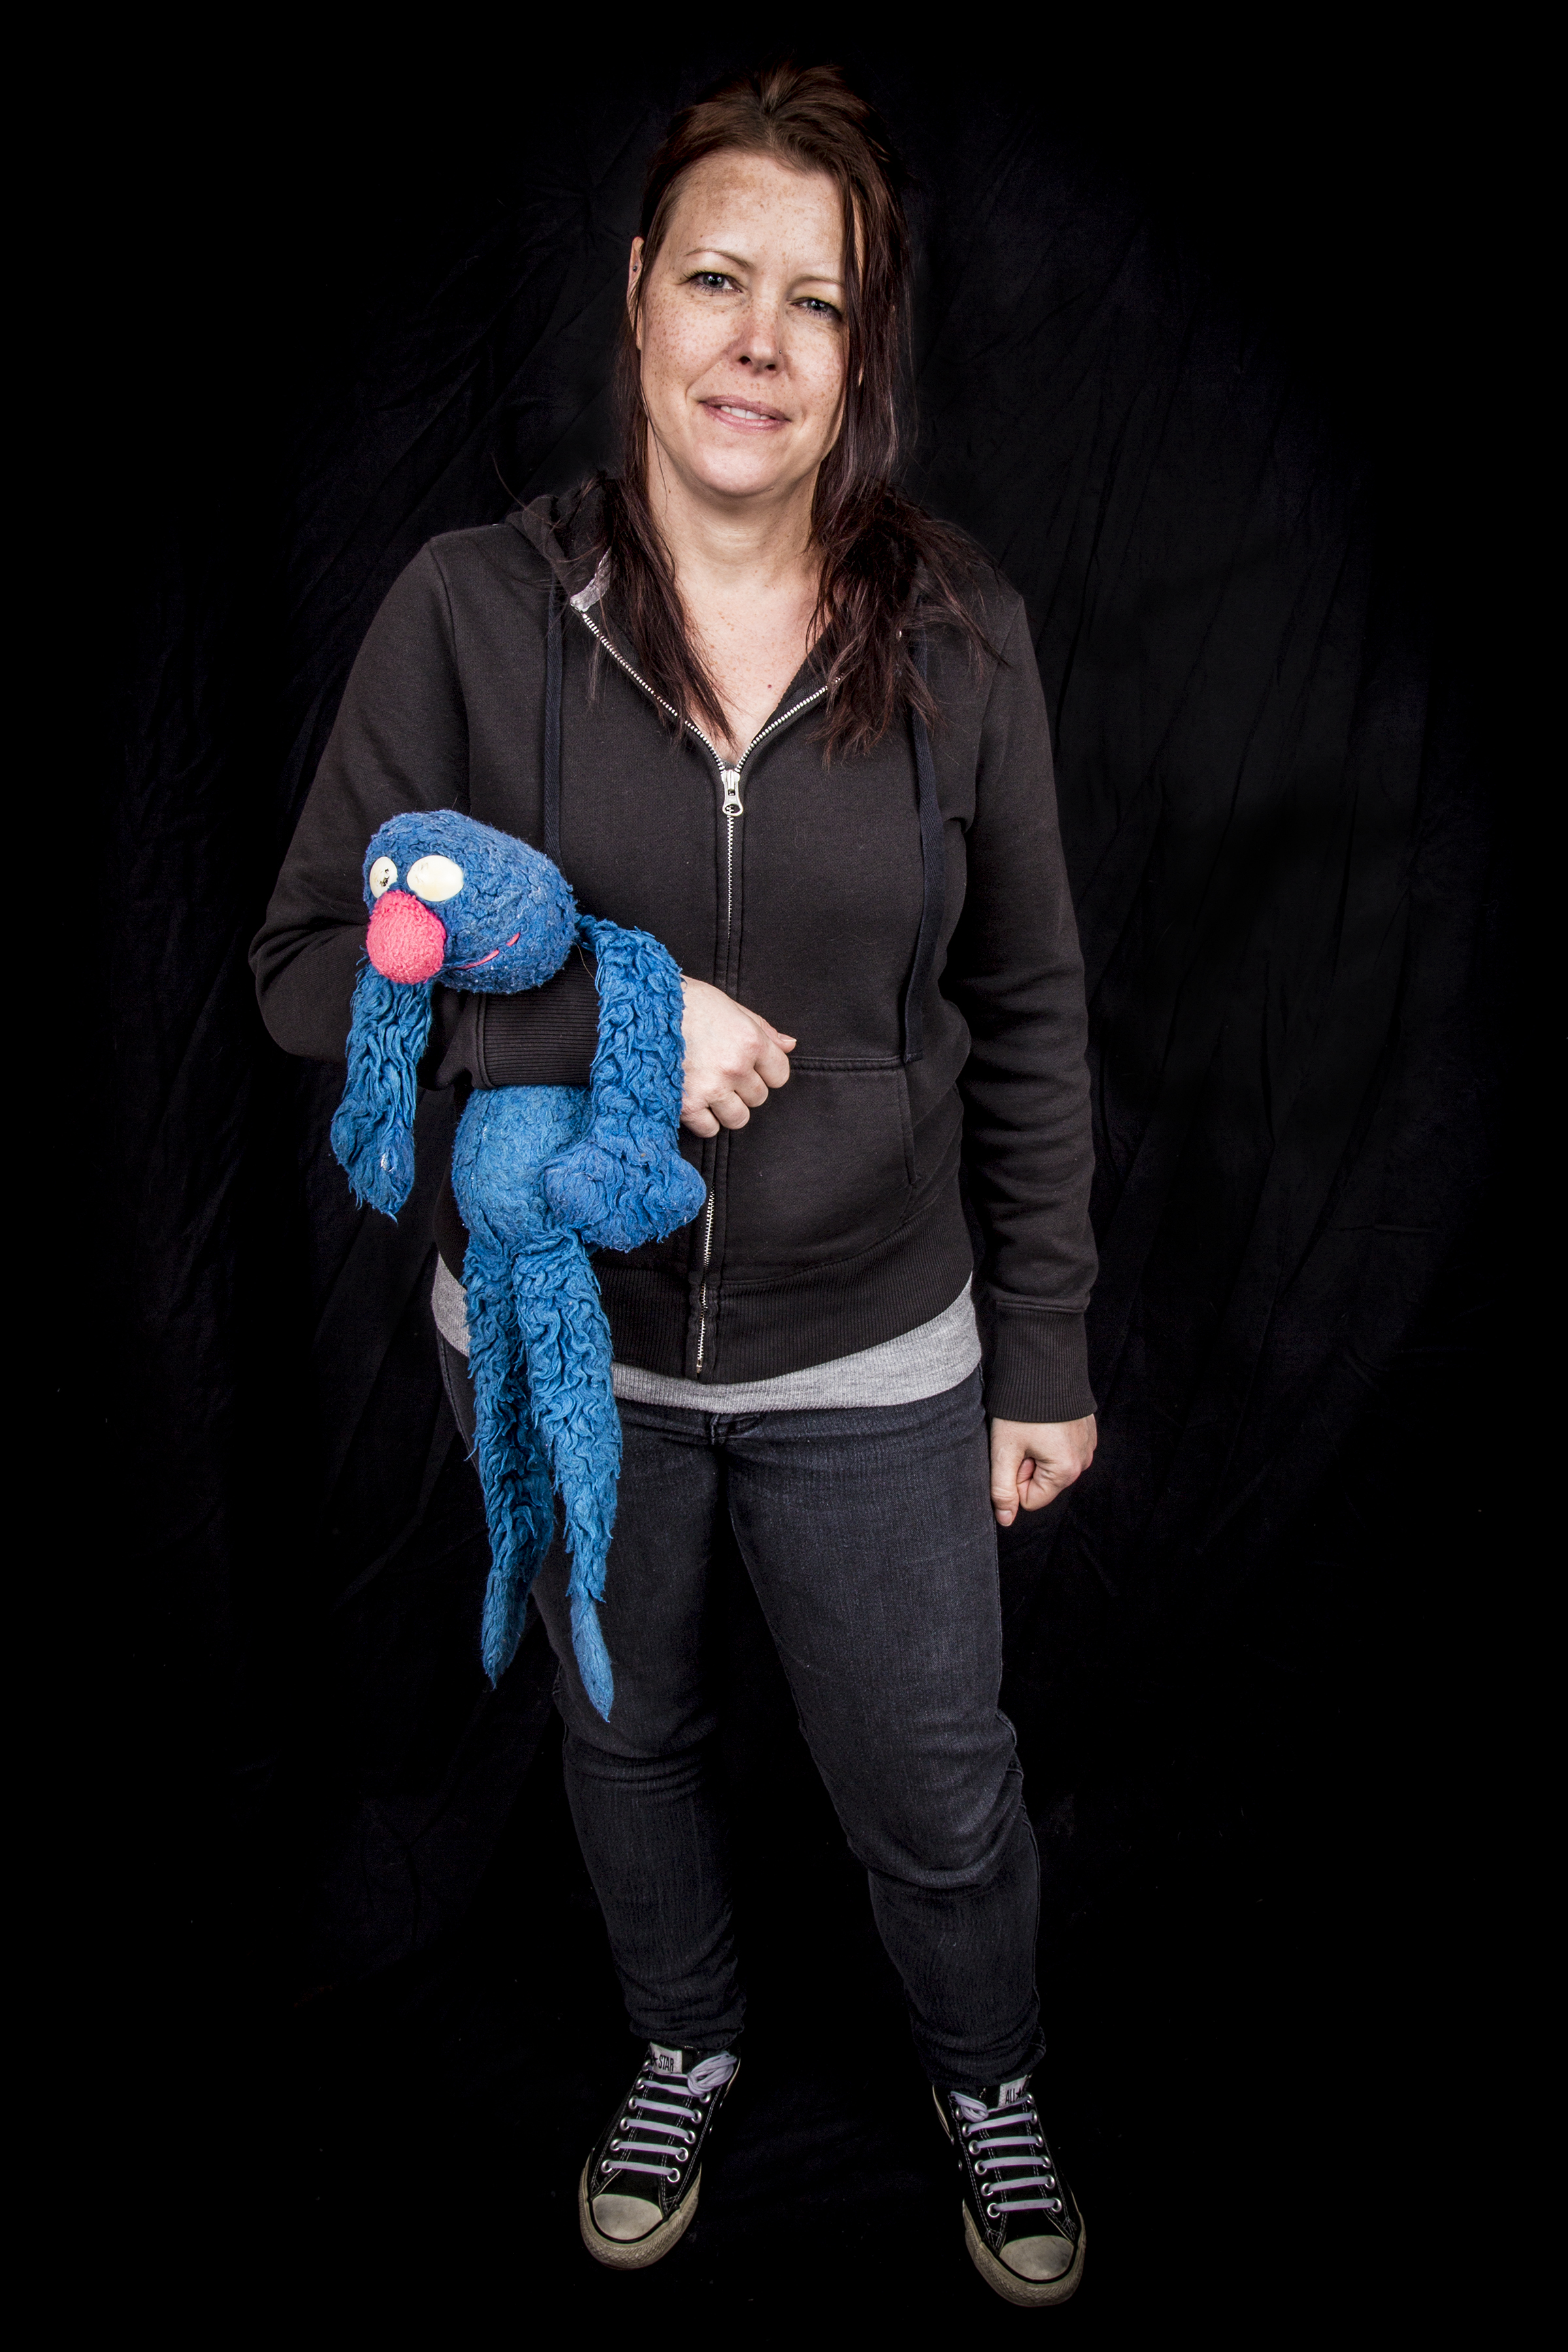 Christina with Grover